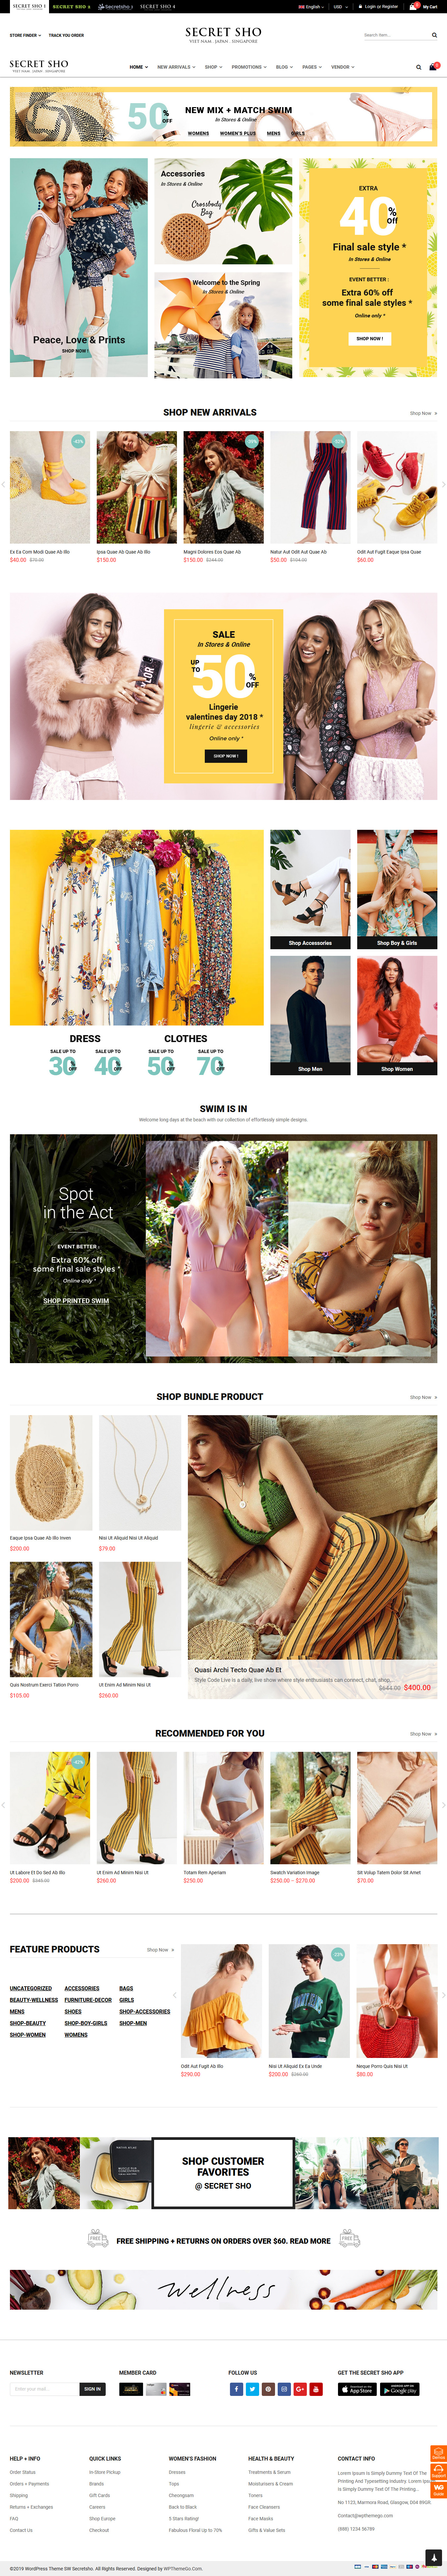 secretsho best premium marketplace wordpress theme - 10+ Best Premium Marketplace WordPress Themes